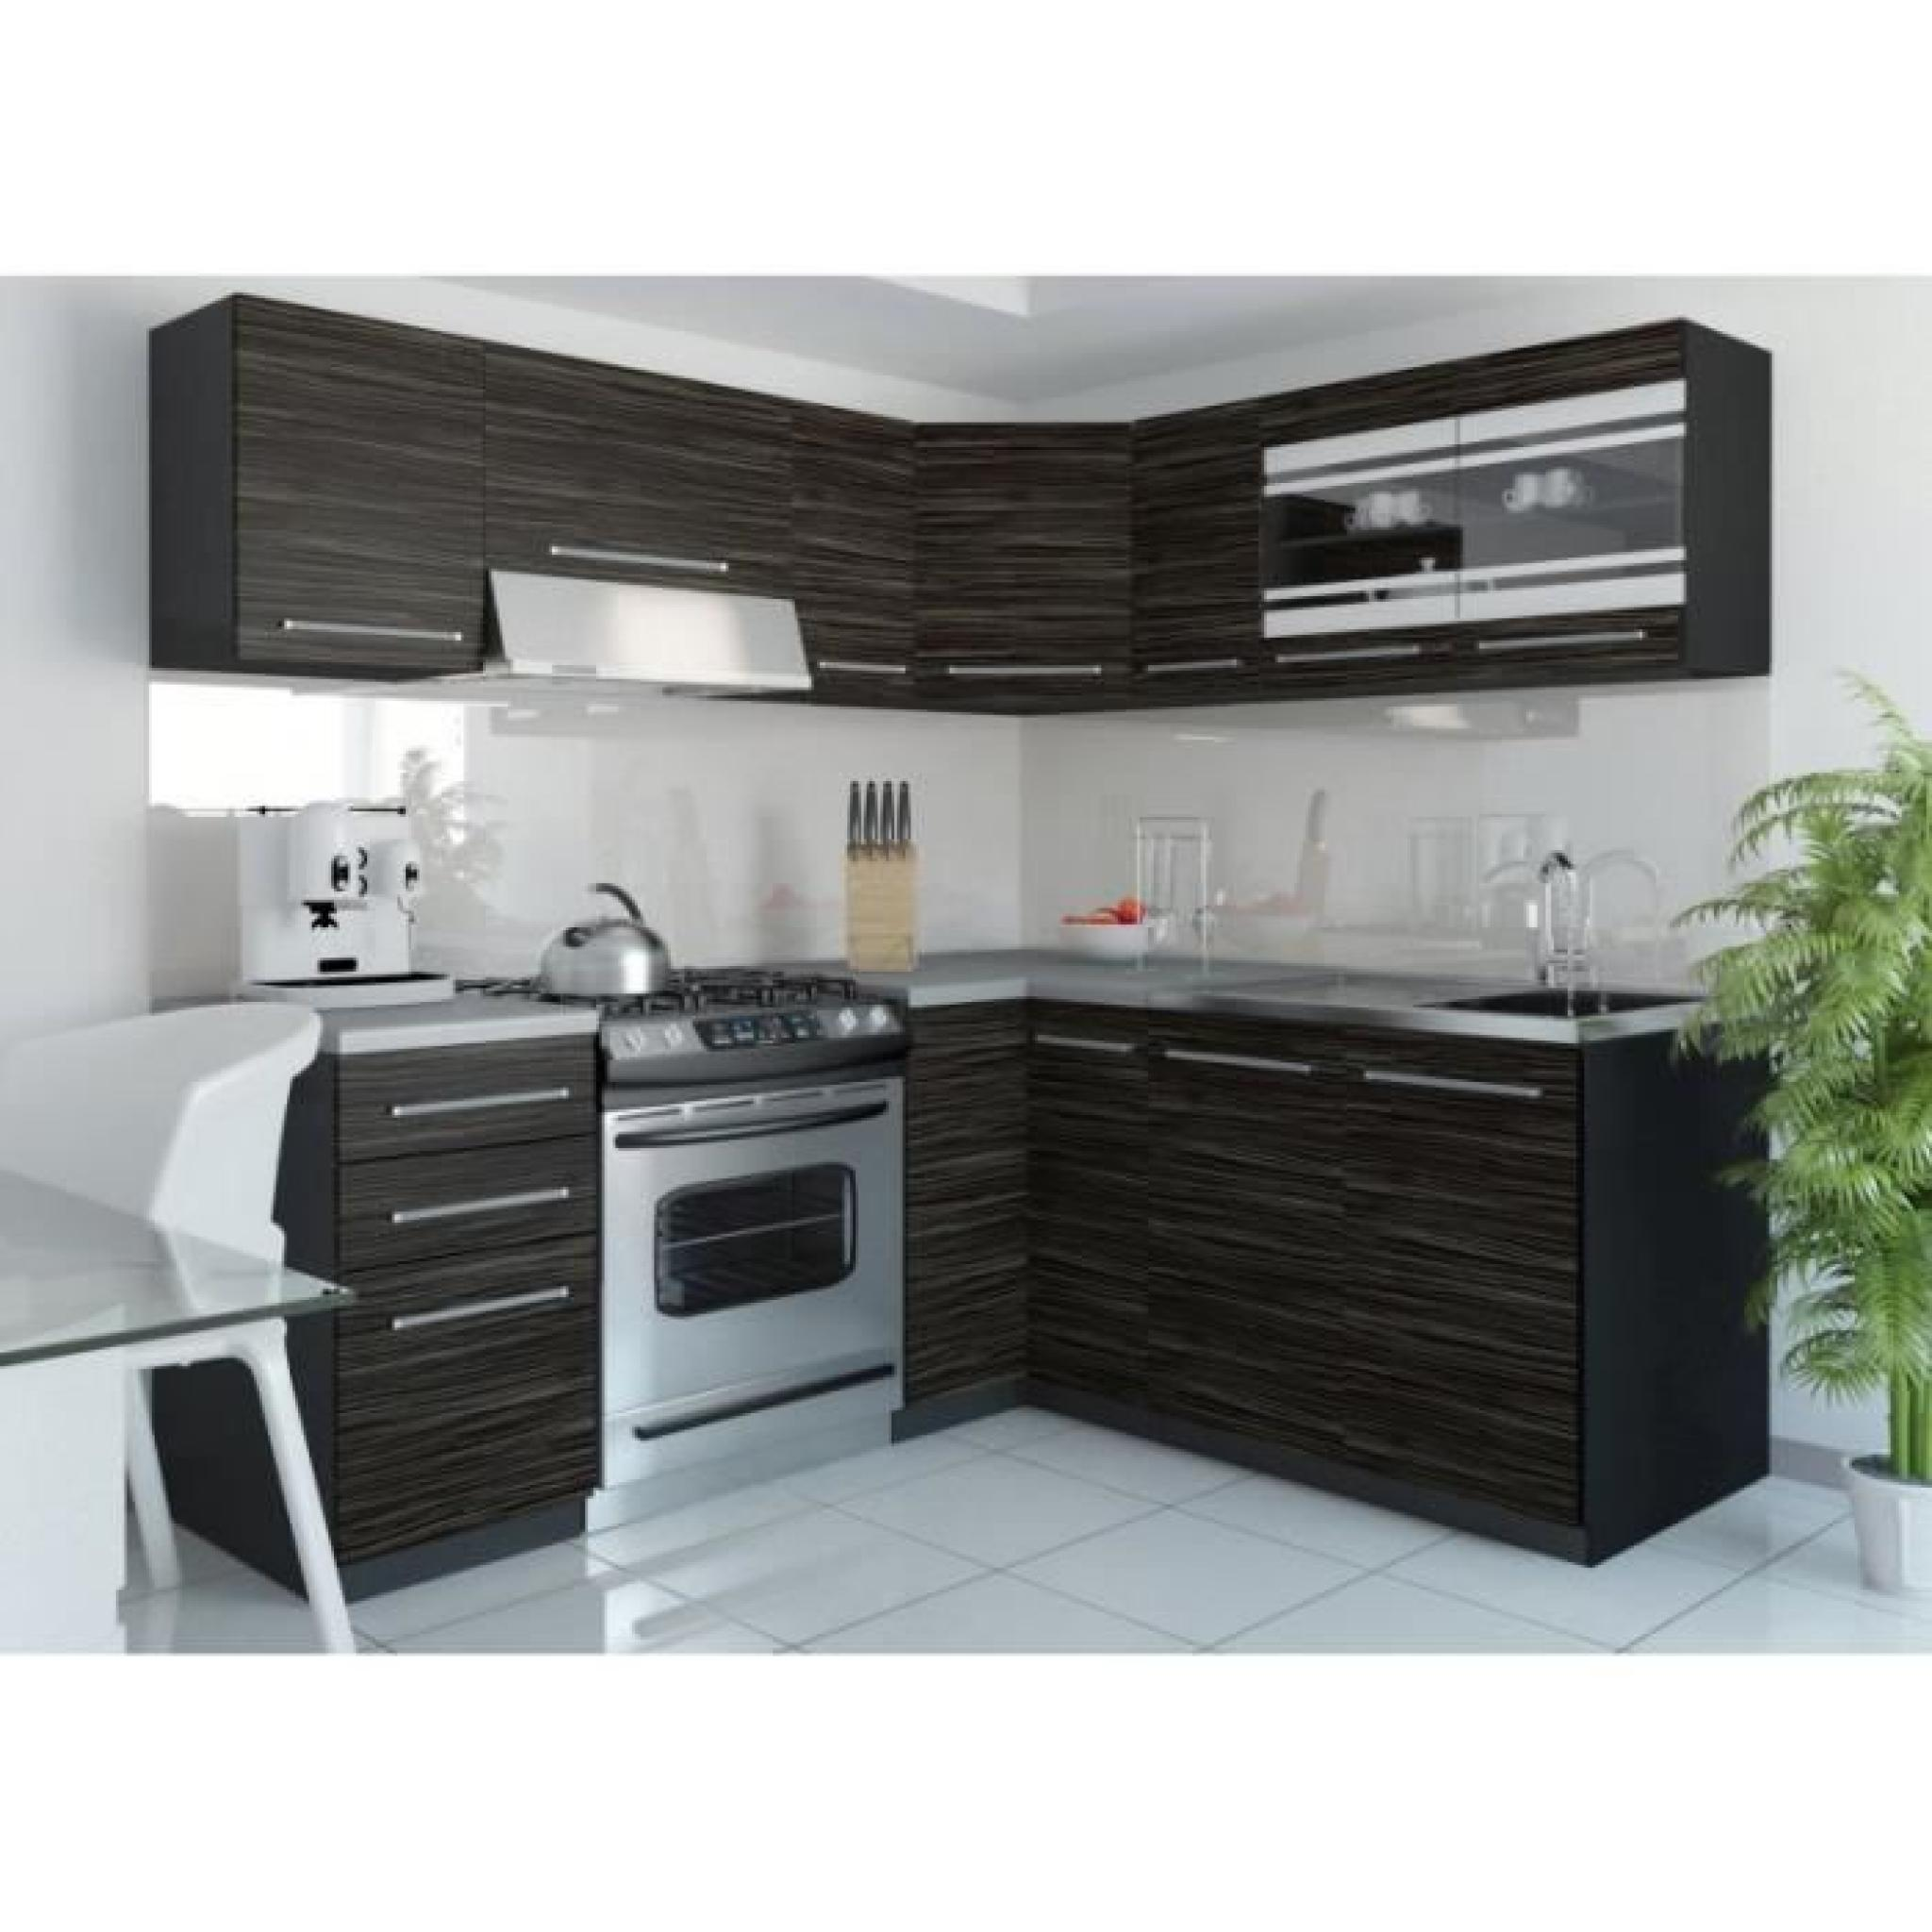 justhome torino 4 l cuisine quip e compl te 190x170 cm mod le de poign e 1 achat vente. Black Bedroom Furniture Sets. Home Design Ideas